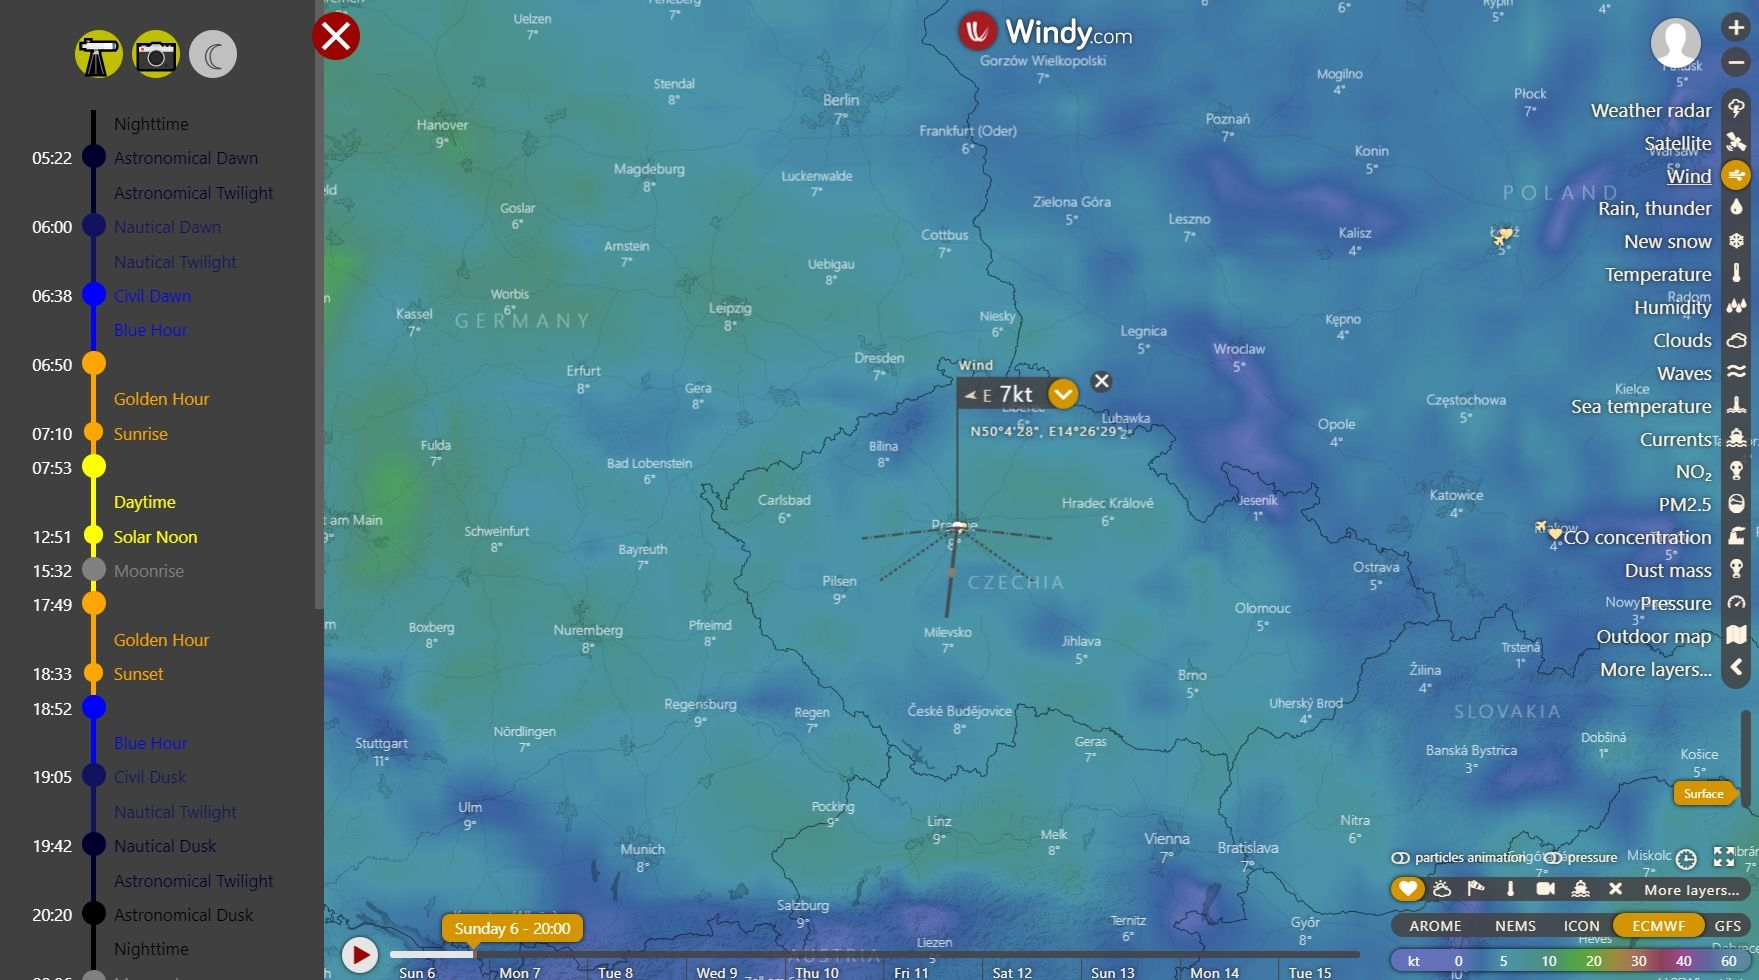 2019-10-06 20.17.56 - Windy_ Wind map & weather forecast - Google Chrome.jpg